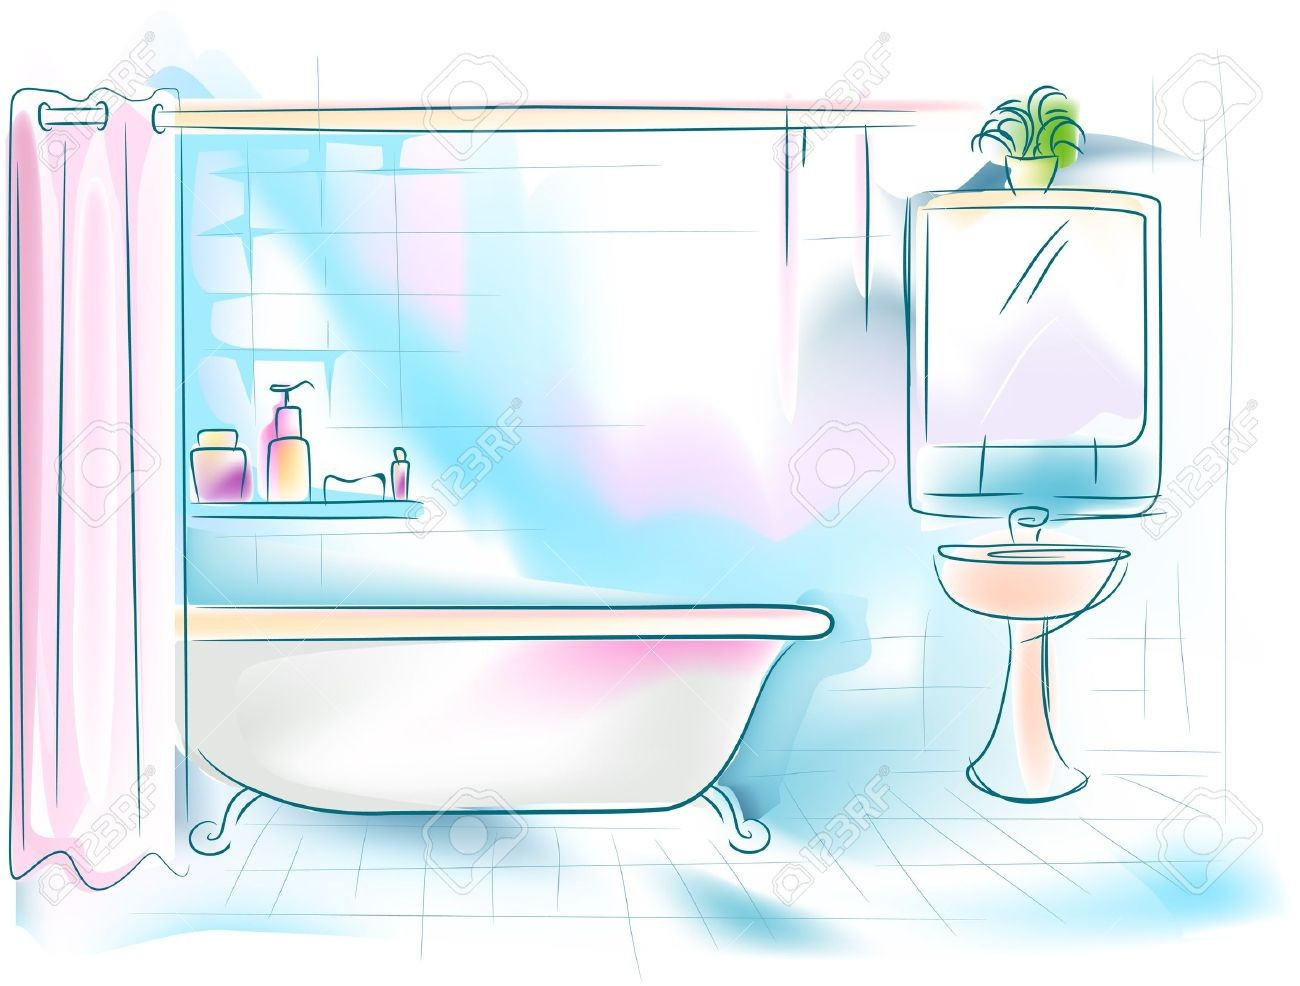 Cliparting com elegant looking. Bathroom clipart